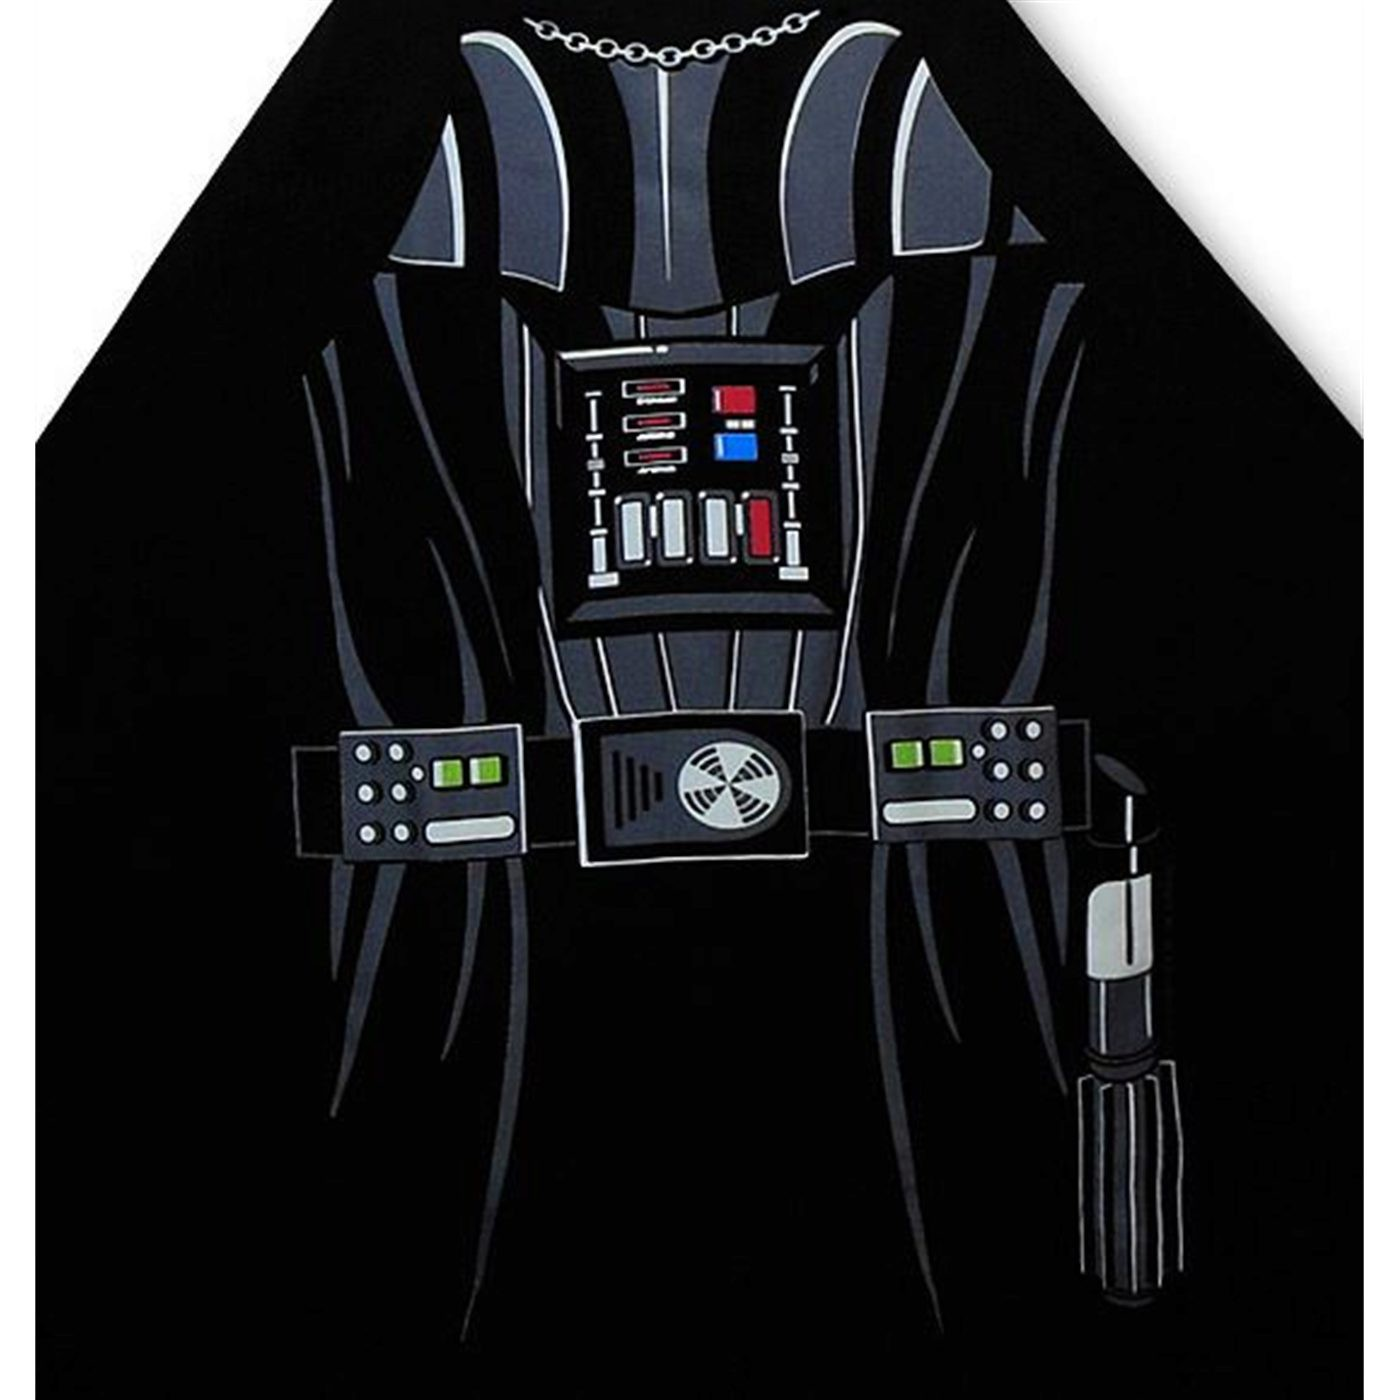 Star Wars Darth Vader Figure Cooking Apron